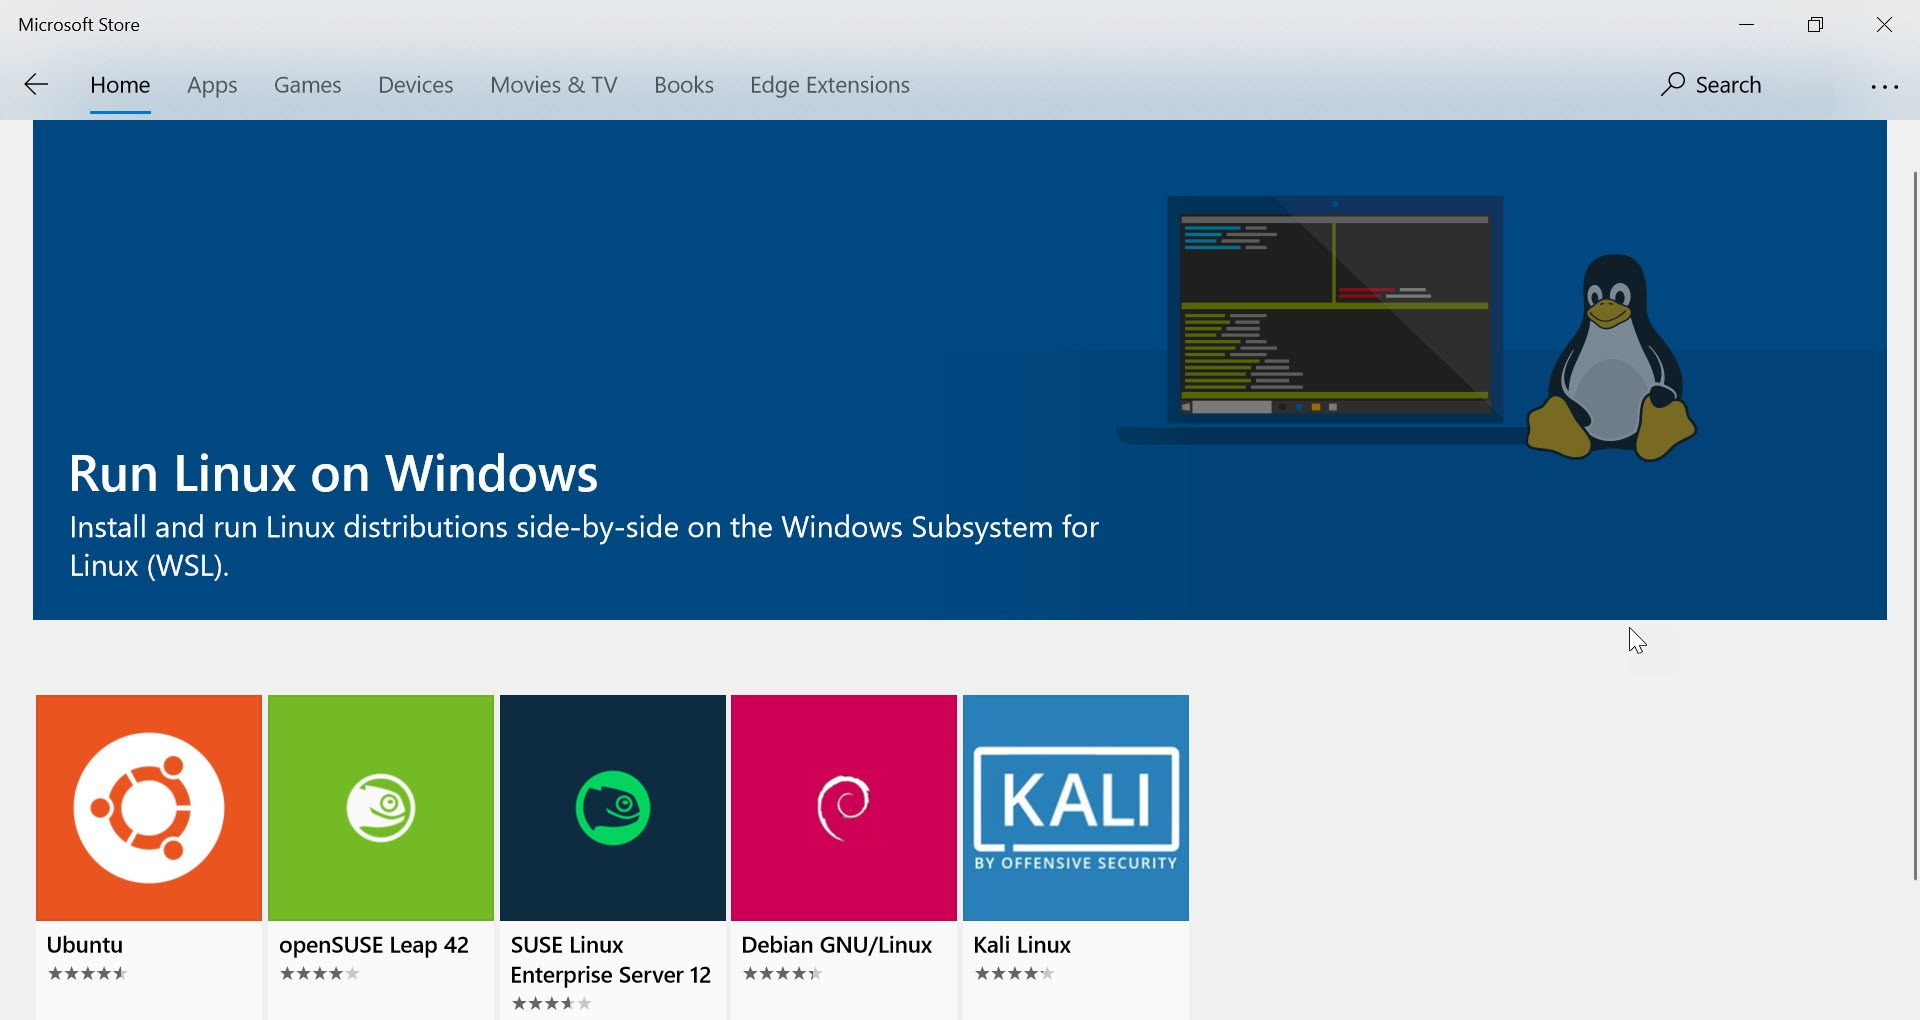 Microsoft Store Linux Distributions screenshot